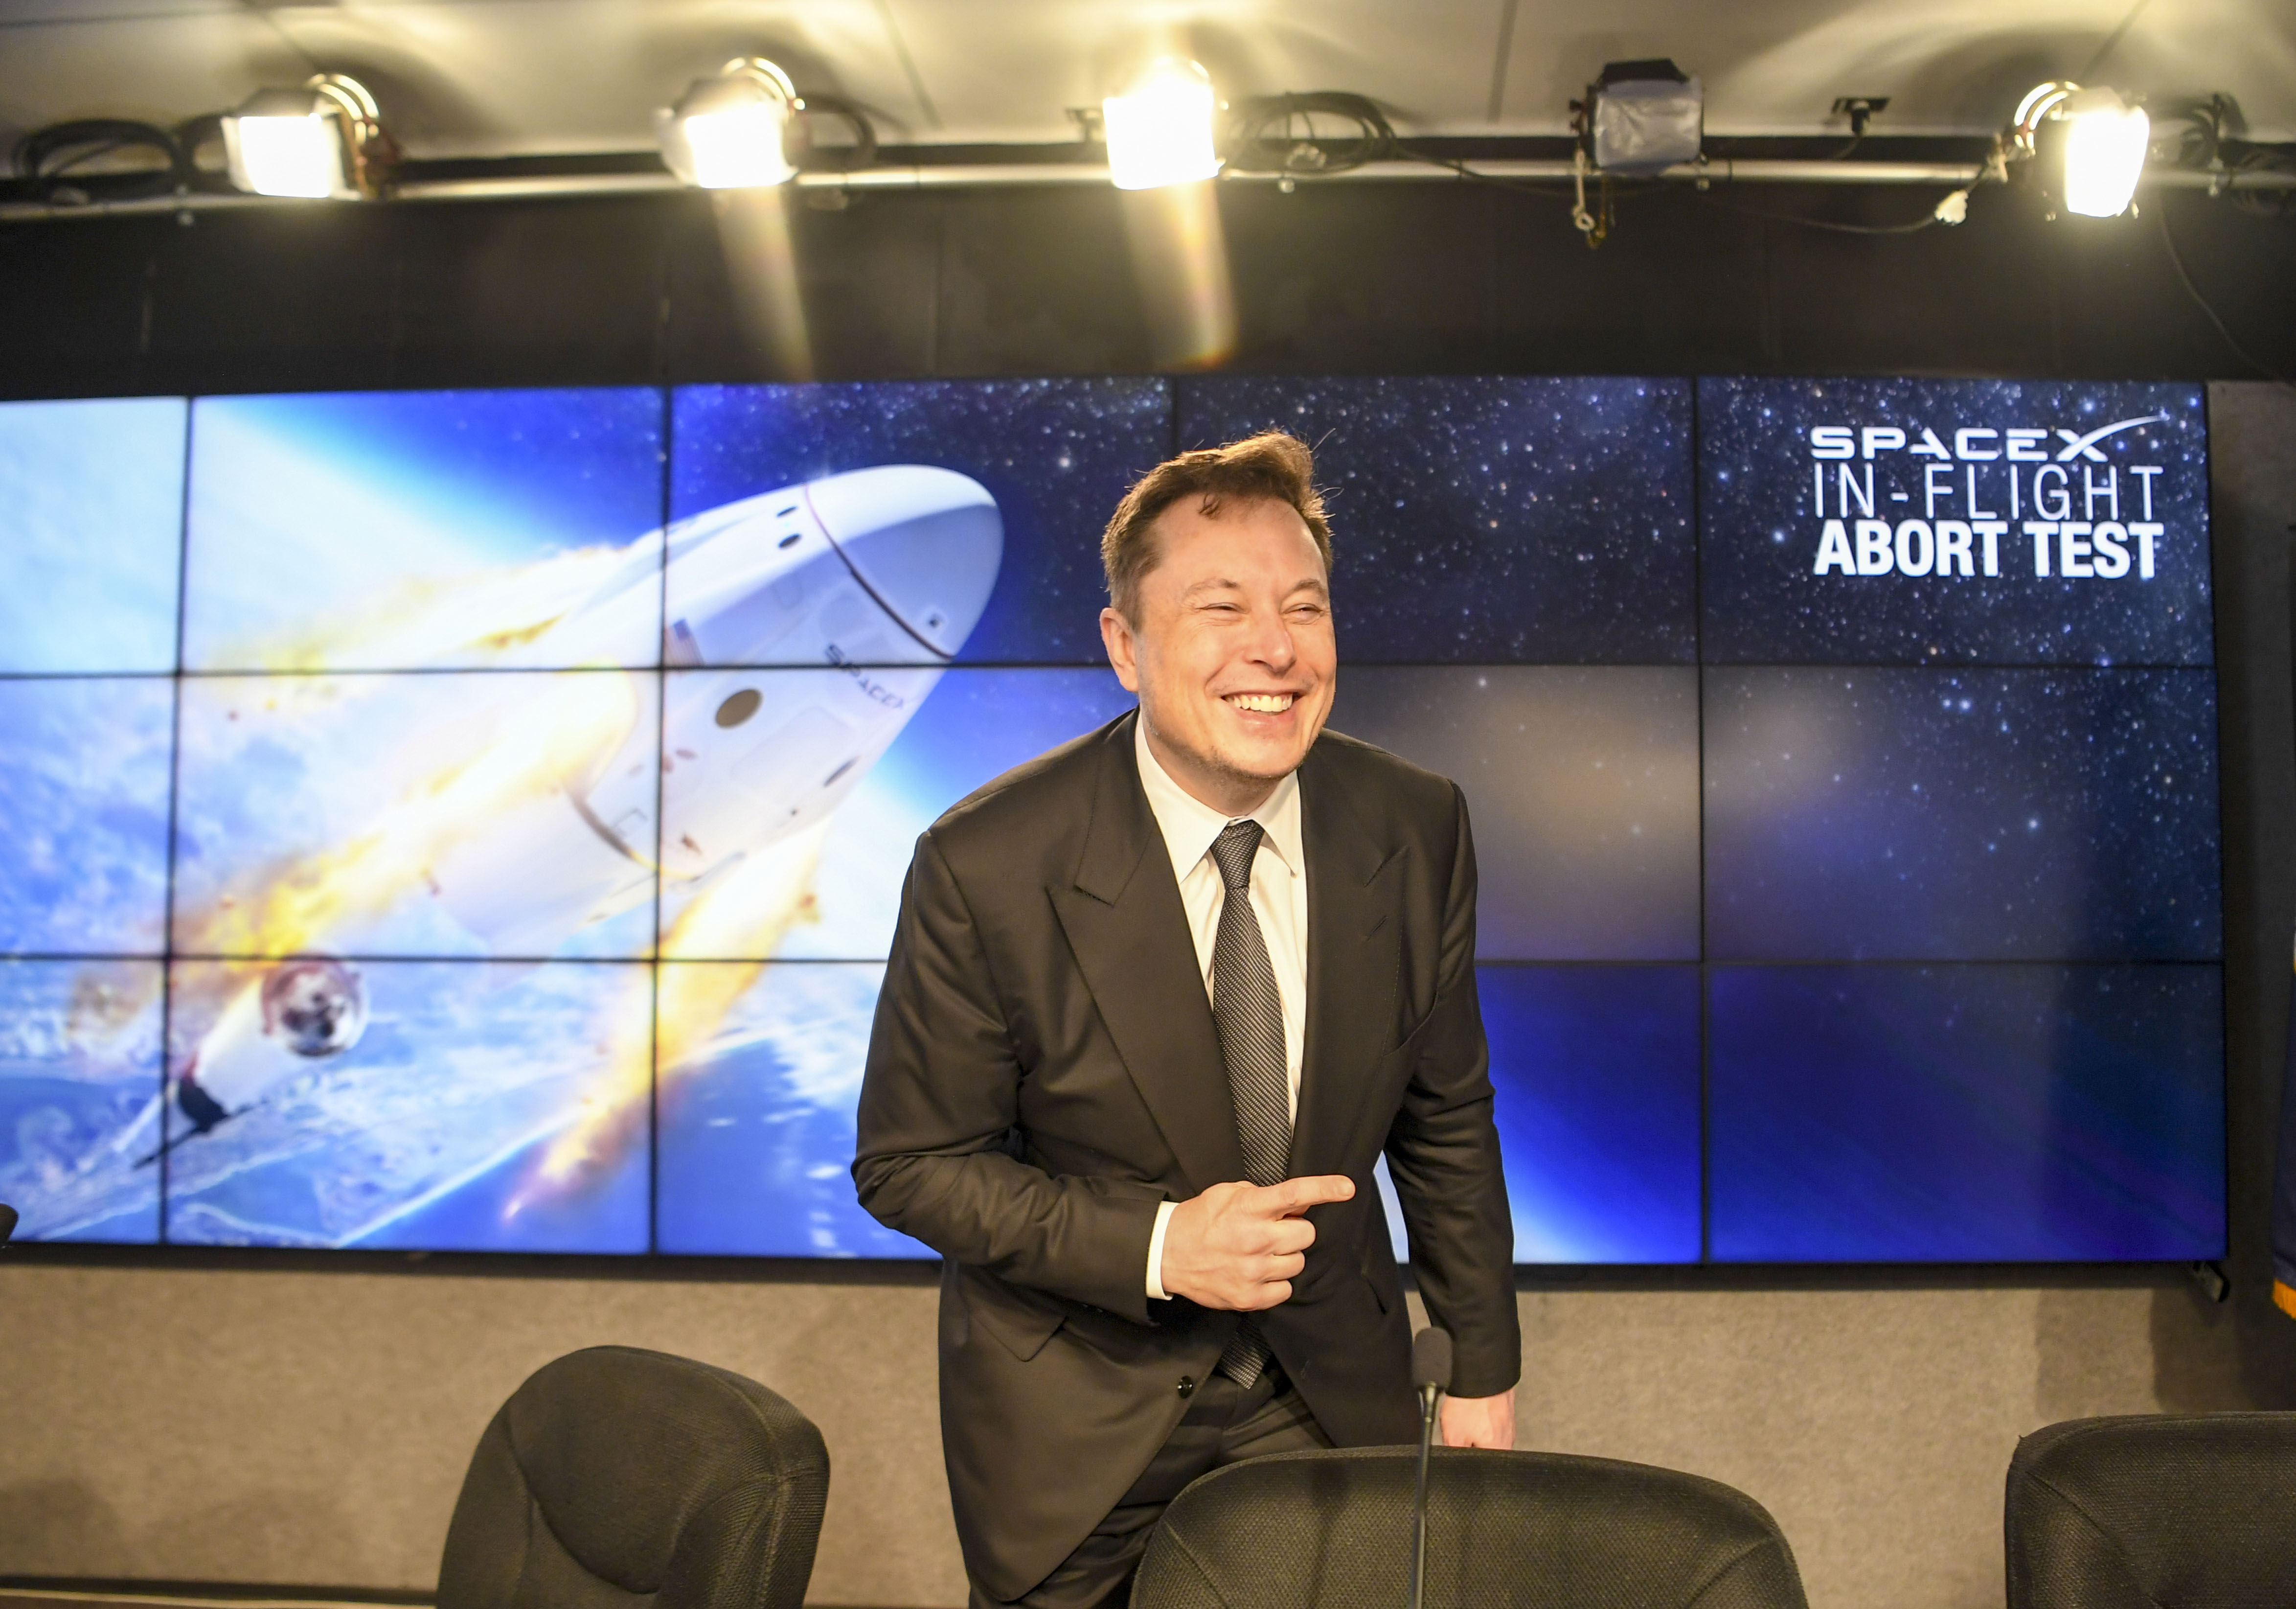 SpaceX CEO Elon Musk talks with reporters following a press conference after NASA and SpaceX's performed an in-flight abort test of the Crew Dragon capsule at NASA's Kennedy Space Center in Cape Canaveral, Fla., on Jan. 19, 2020. MUST CREDIT: Washington Post photo by Jonathan Newton